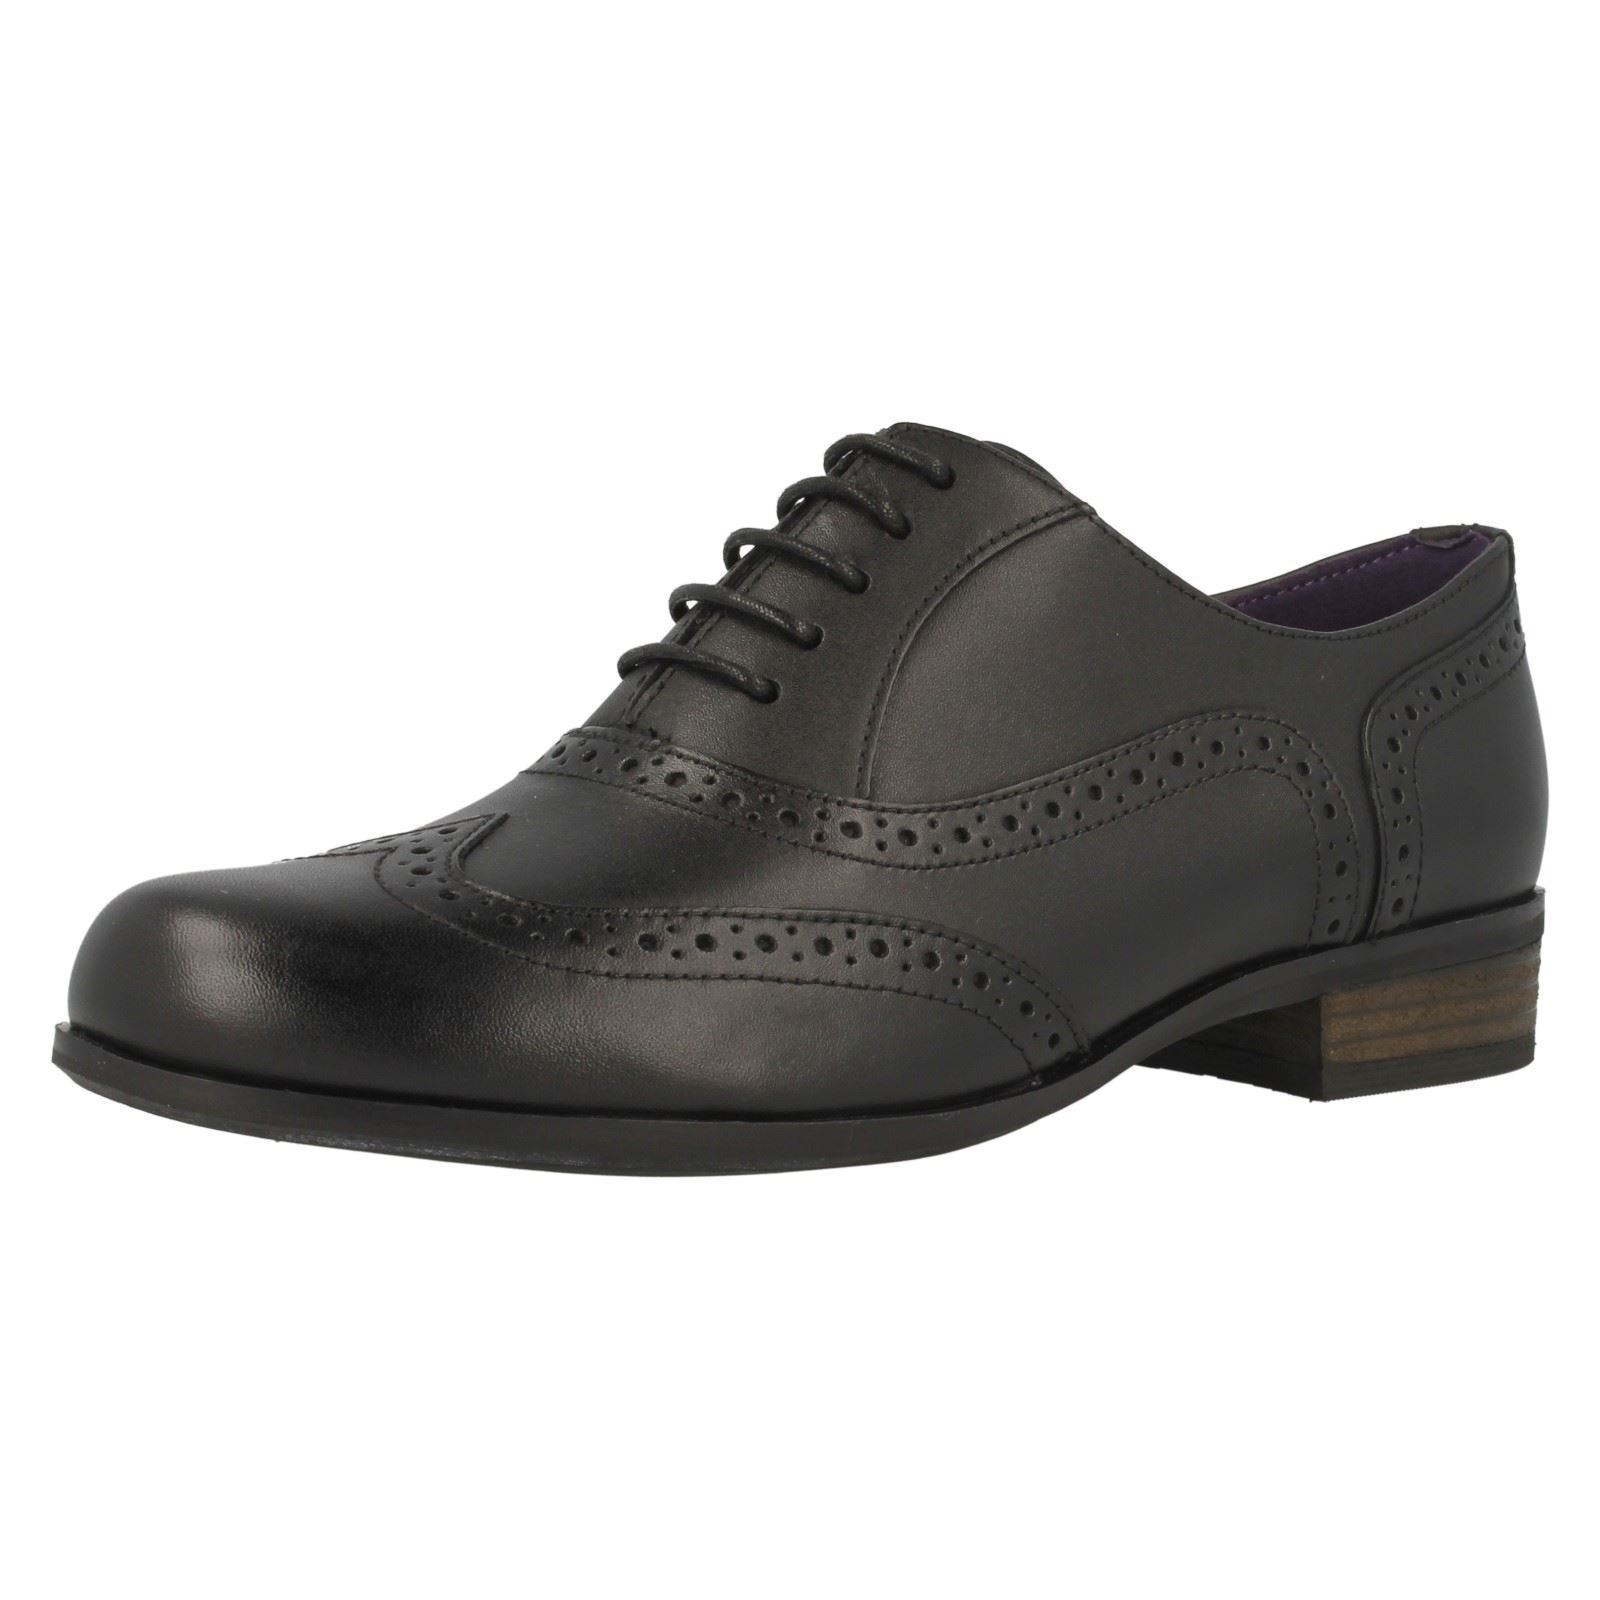 LADIES CLARKS BLACK HAMBLE OAK LACE UP BLACK CLARKS LEATHER D OR E FITTINGS 6f2369